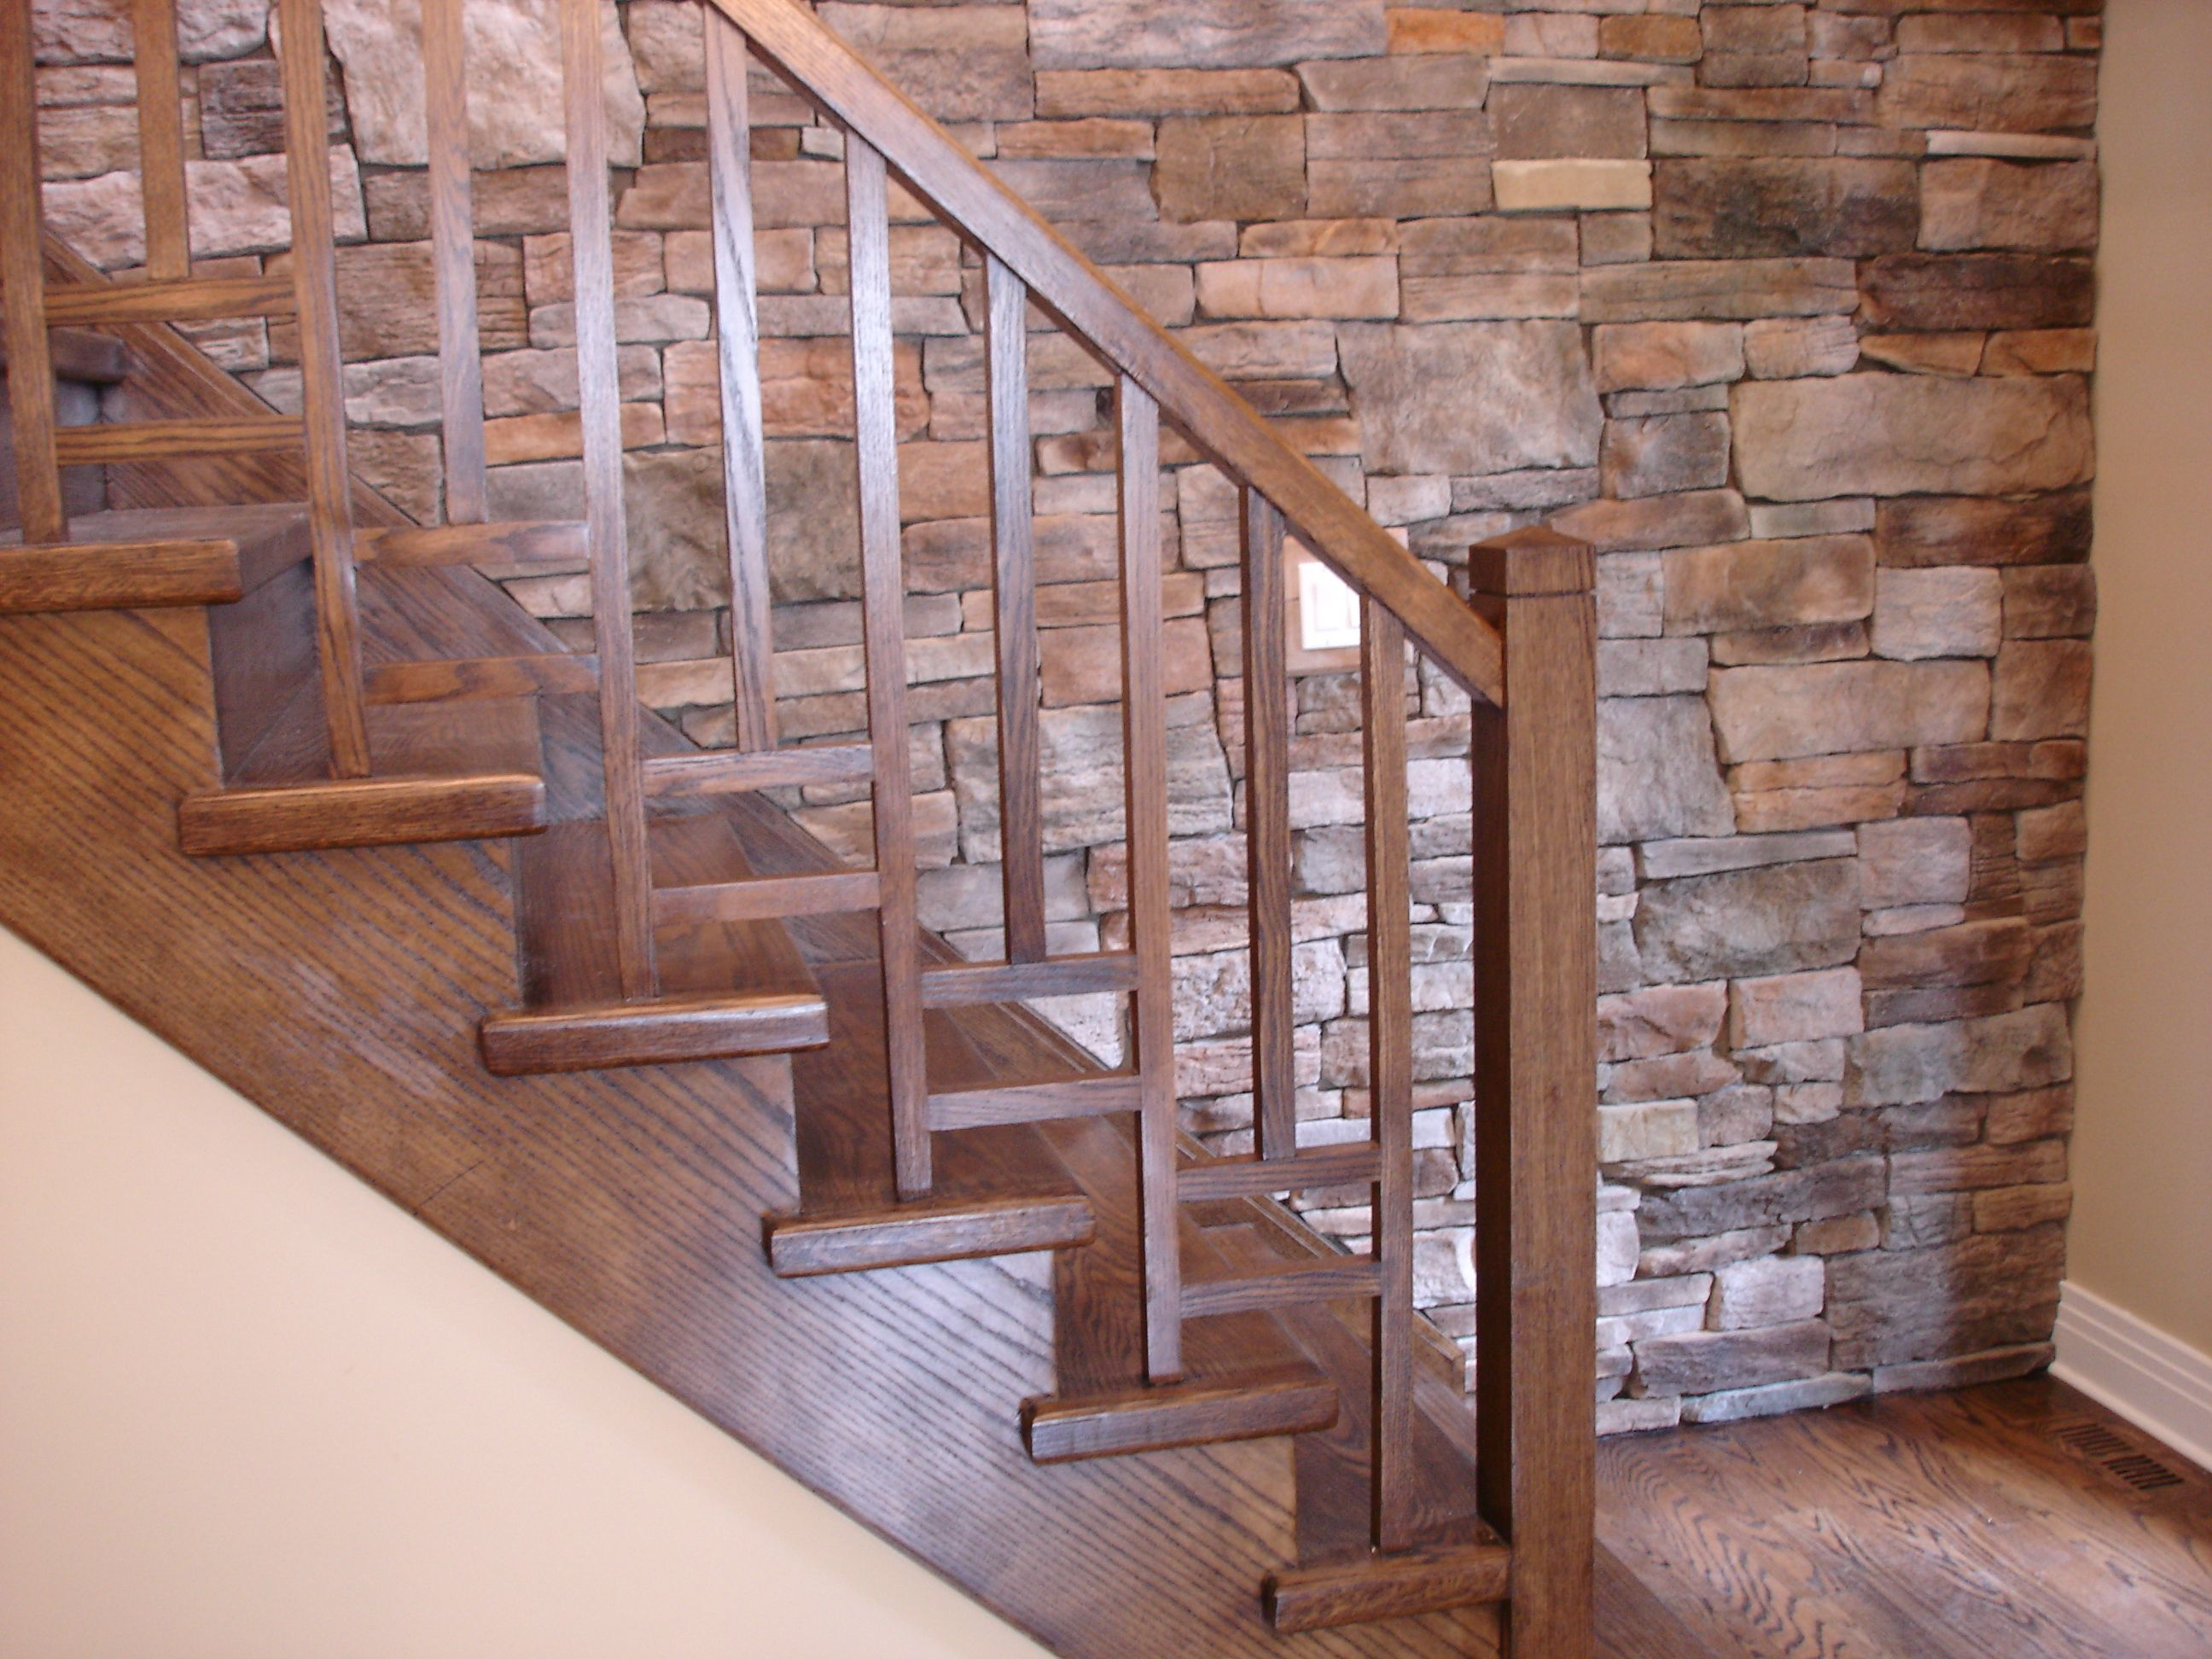 Stair Railing Types Banisters And Railings Ideas Banister